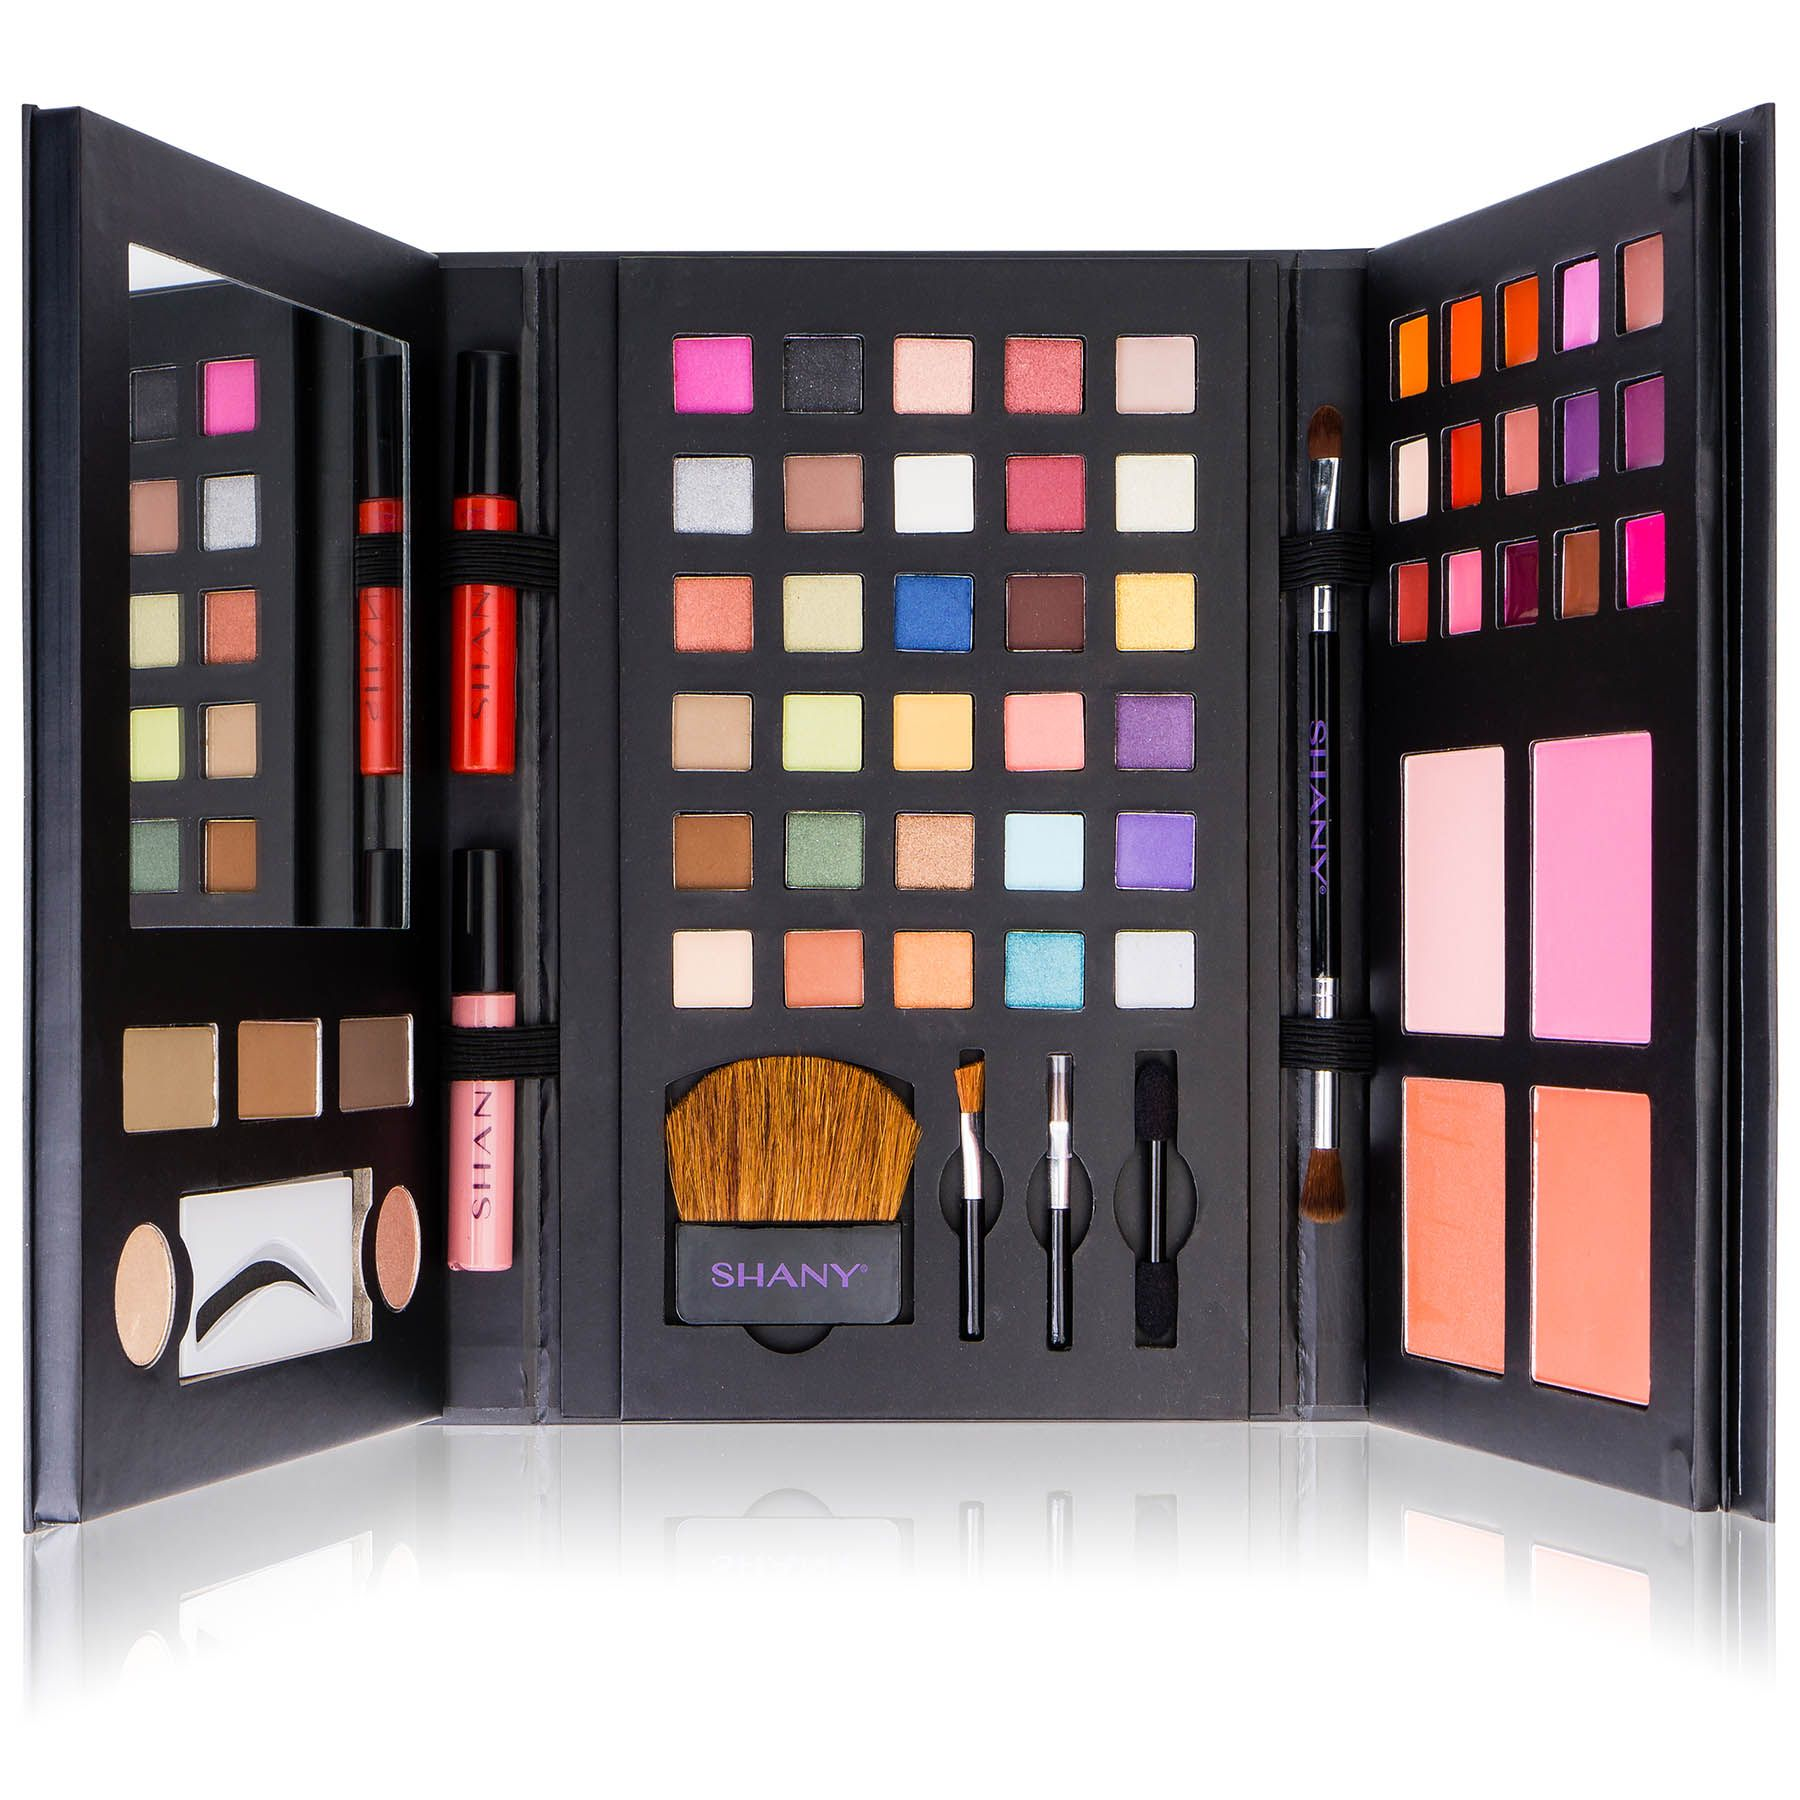 SHANY Luxe Book Makeup Set All In One Travel Cosmetics